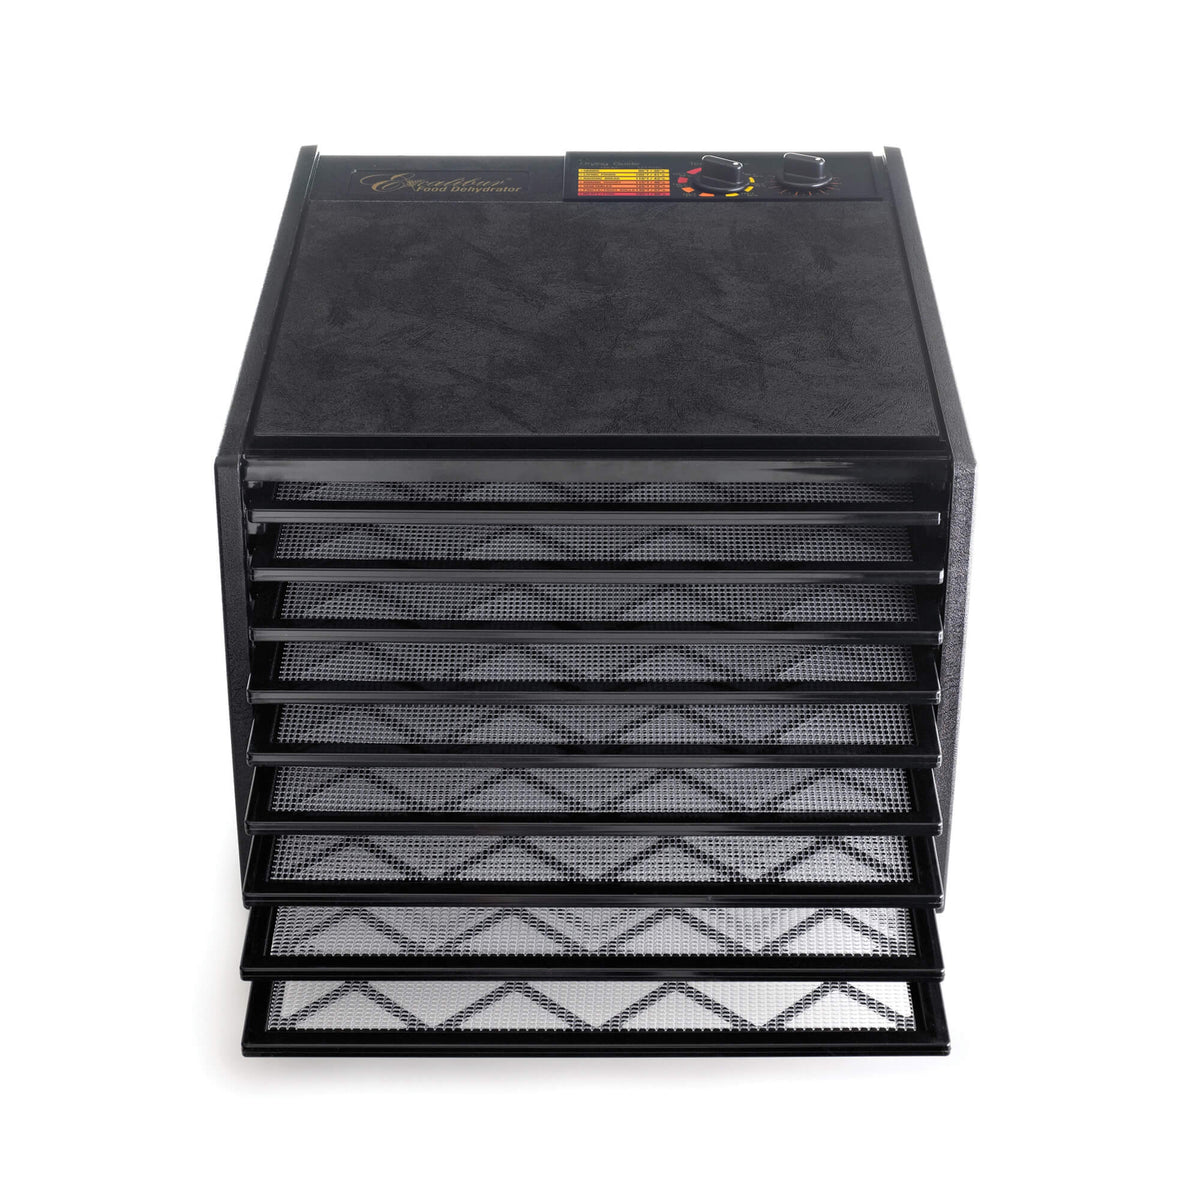 Excalibur 4926TB black 9 tray dehydrator front view with door open and trays pulled out.